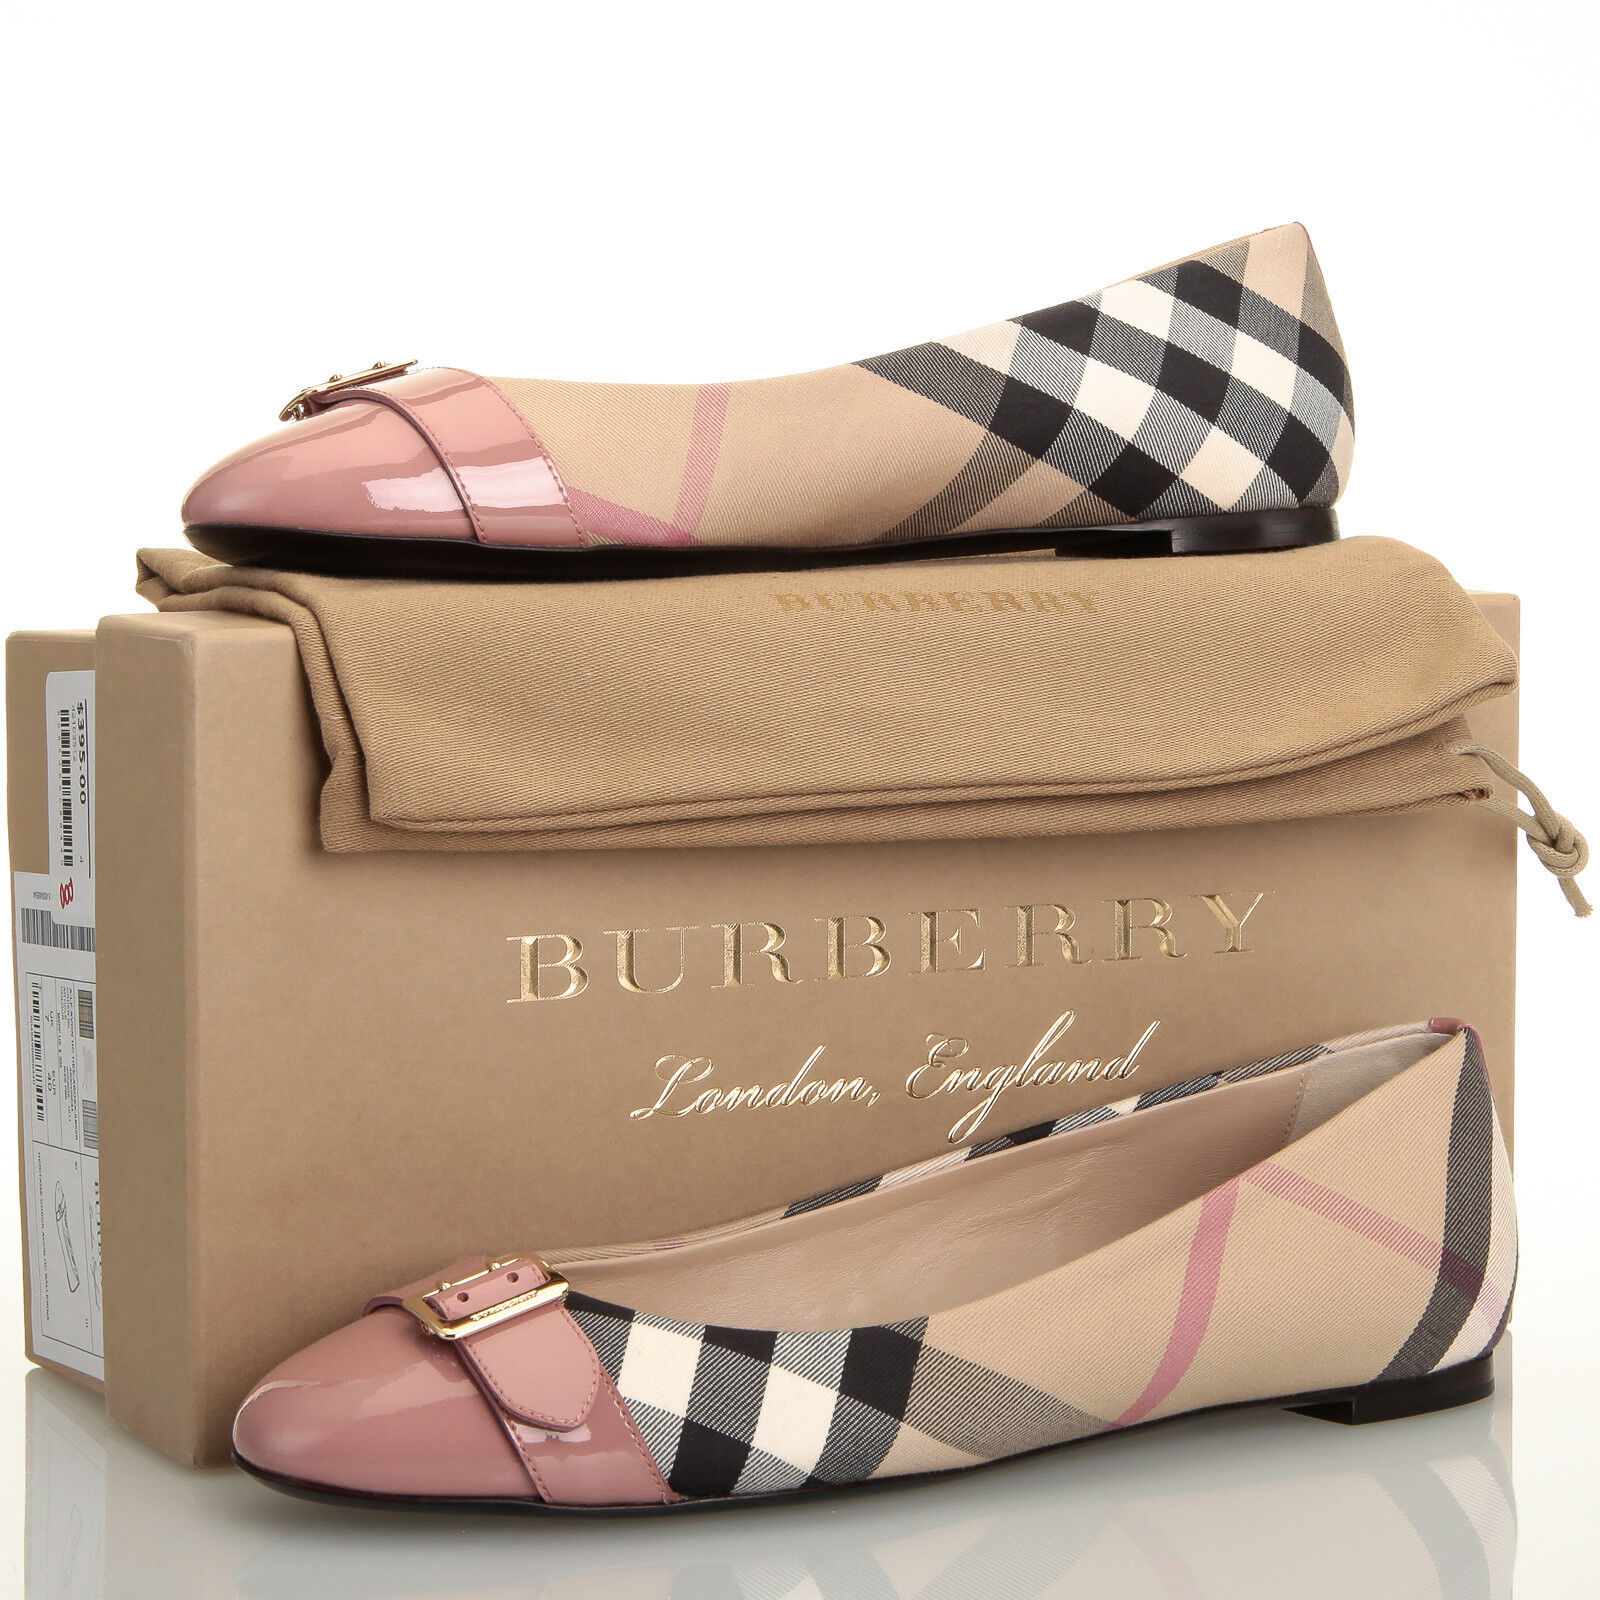 Burberry Avonwick Beige Nude Pink Flat Shoes - Womens US 10 ()